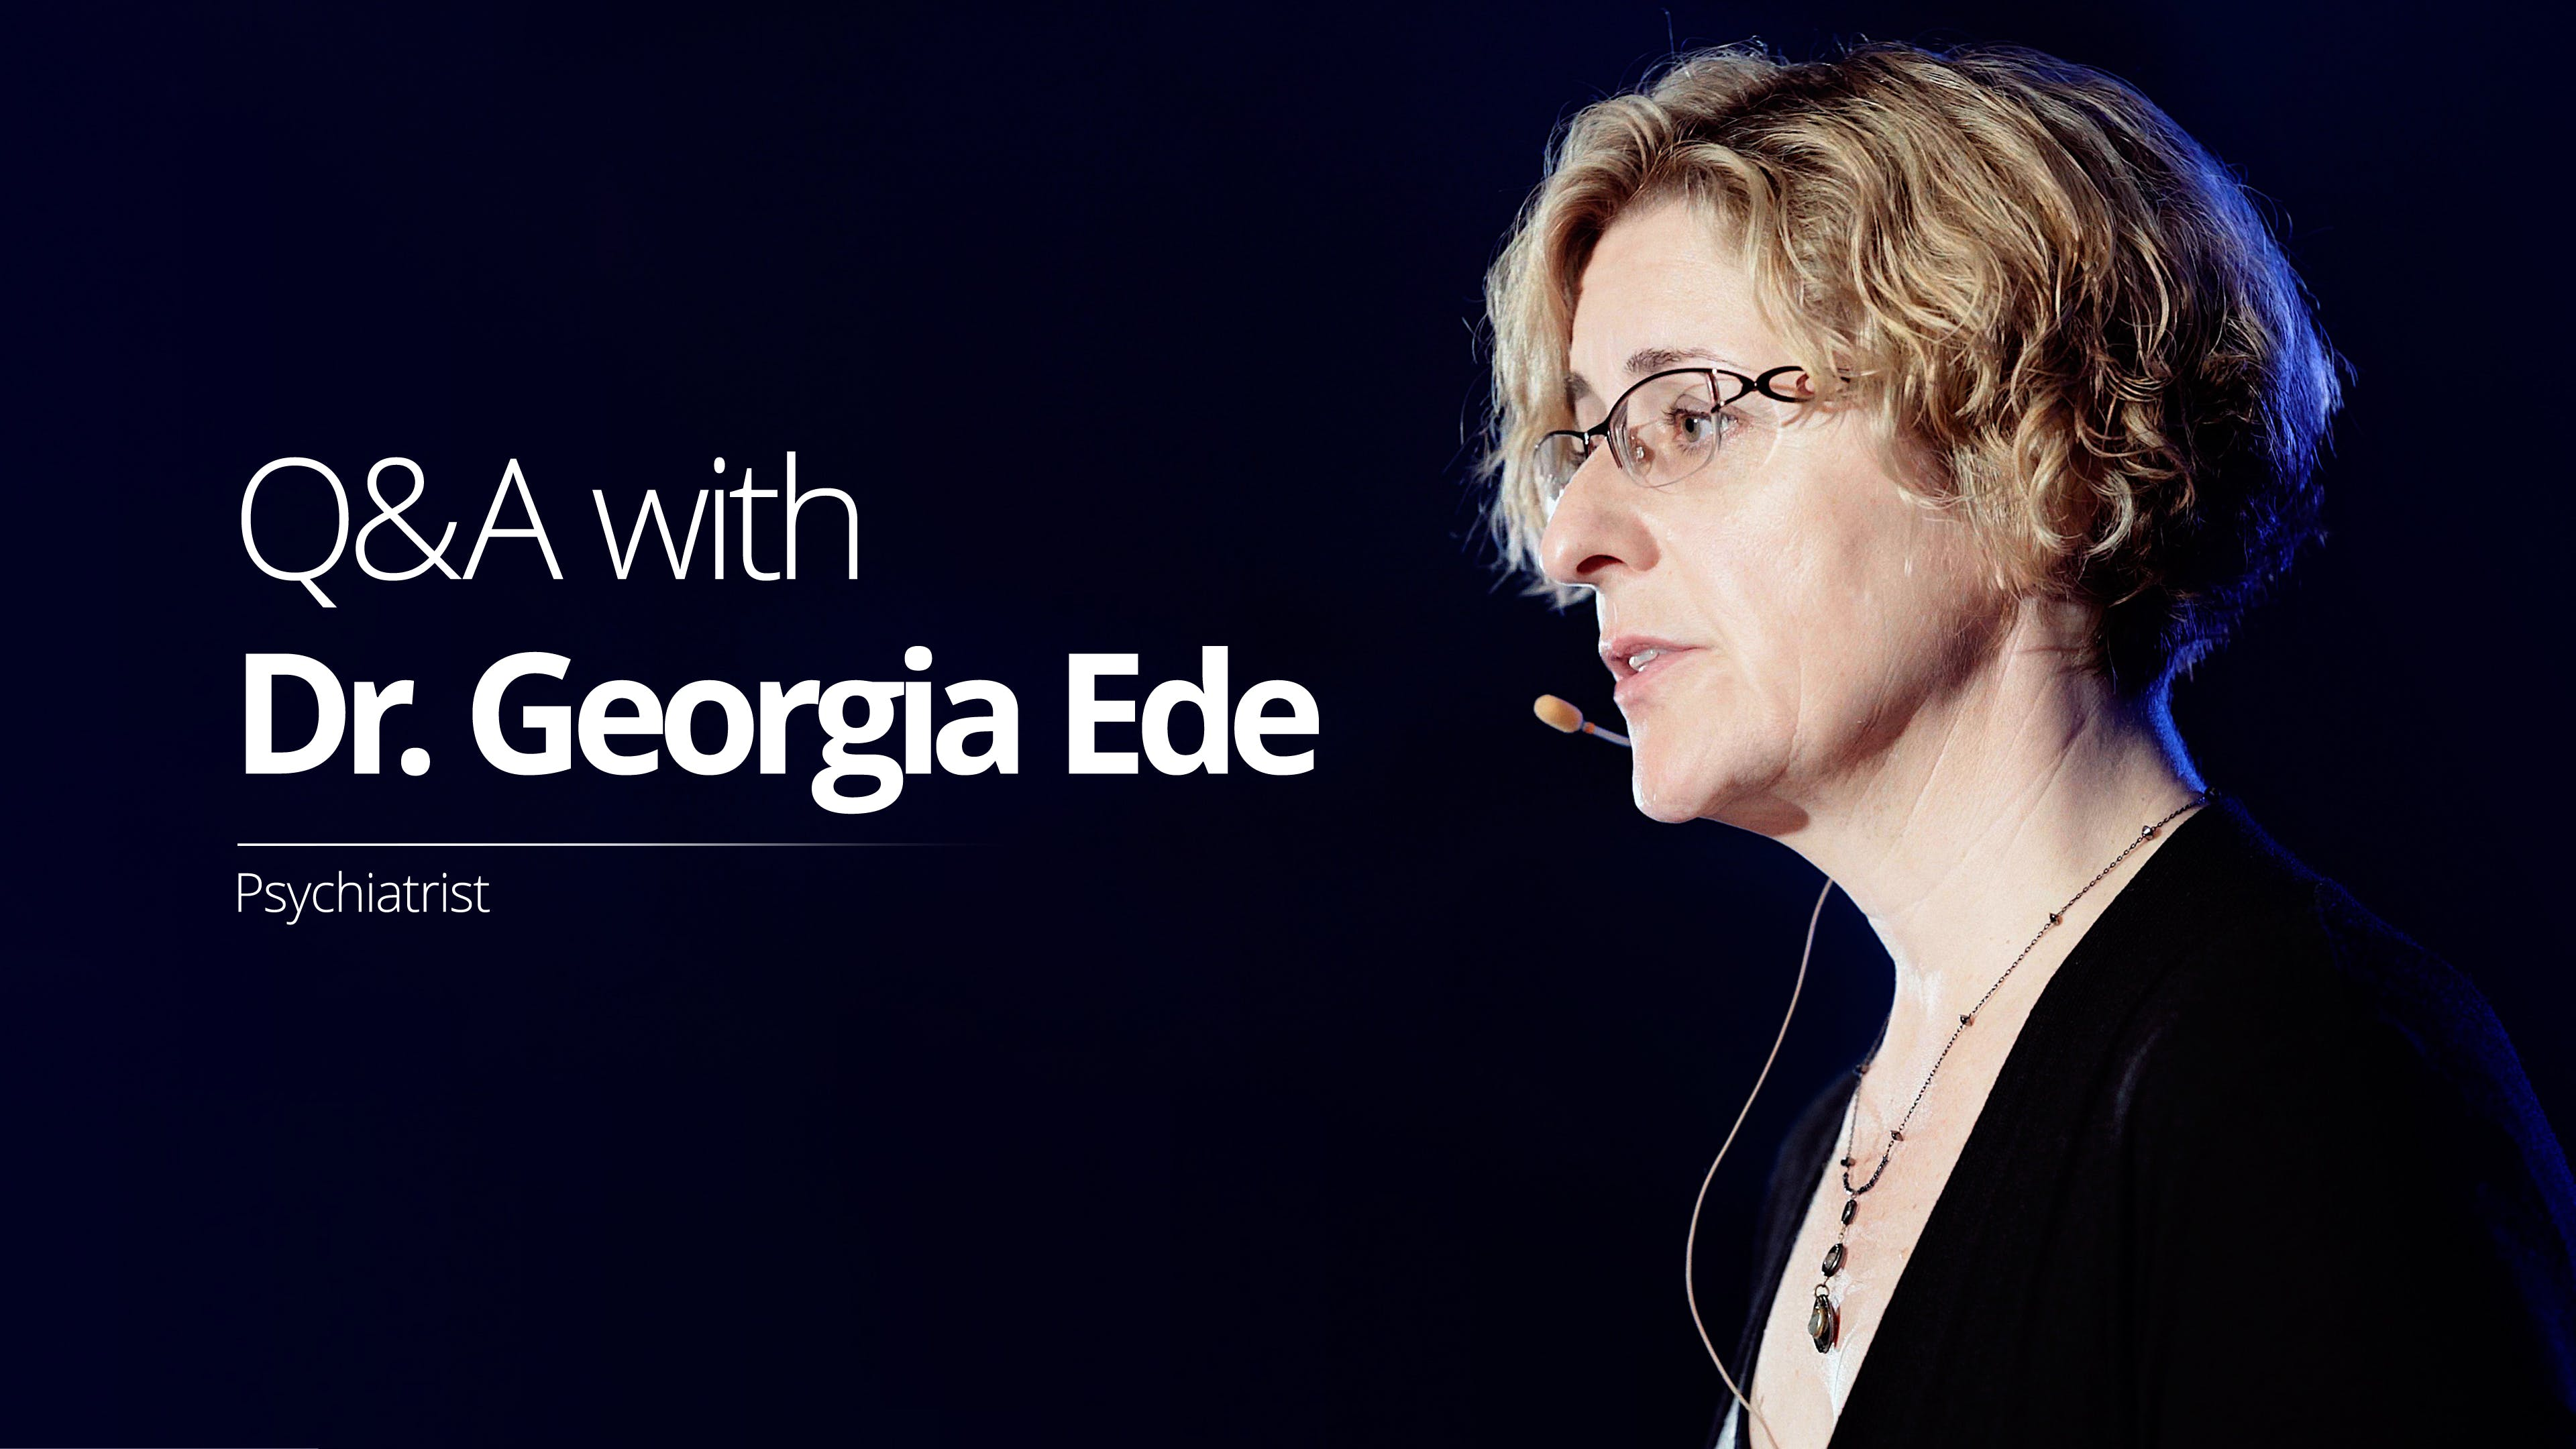 Q&A with Dr. Georgia Ede